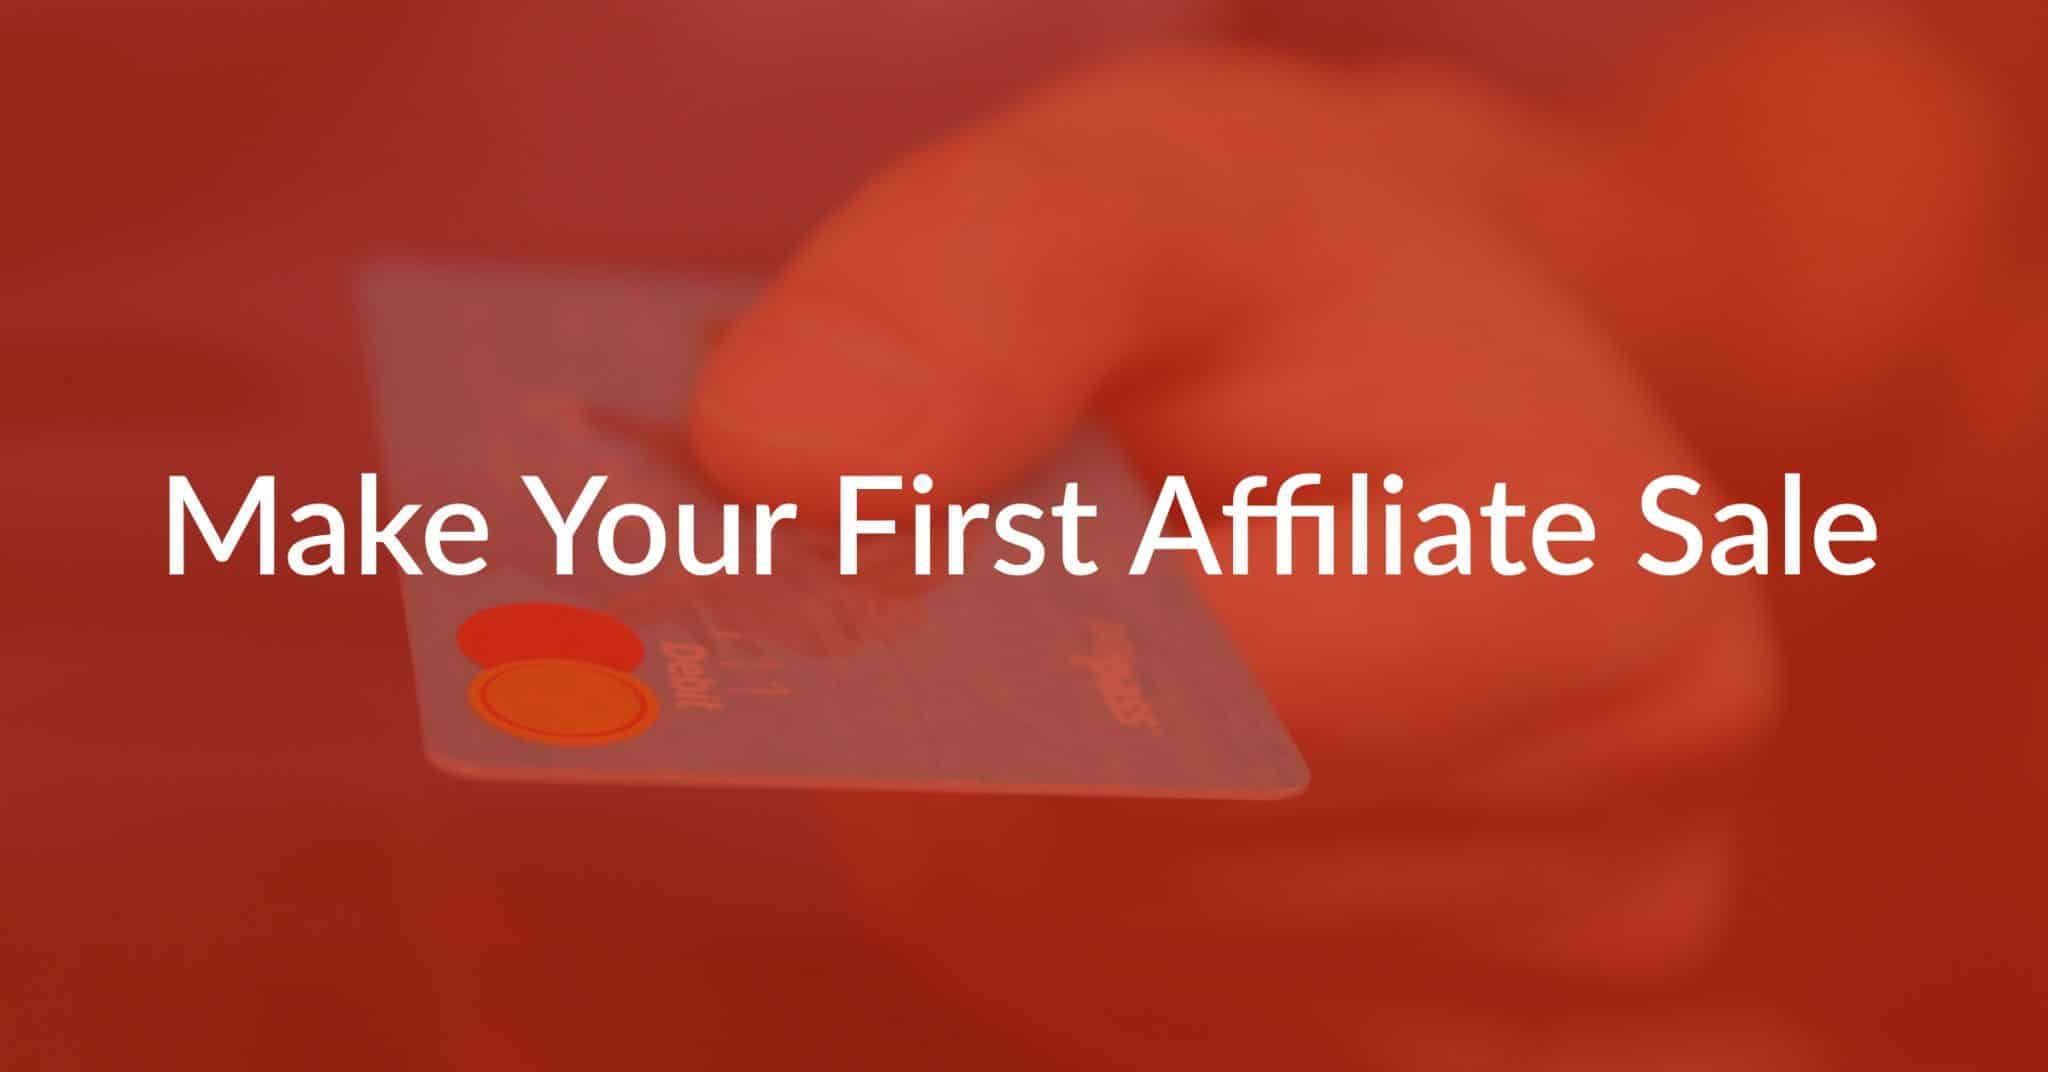 How To Make Your First Affiliate Sale (Without An Audience!)